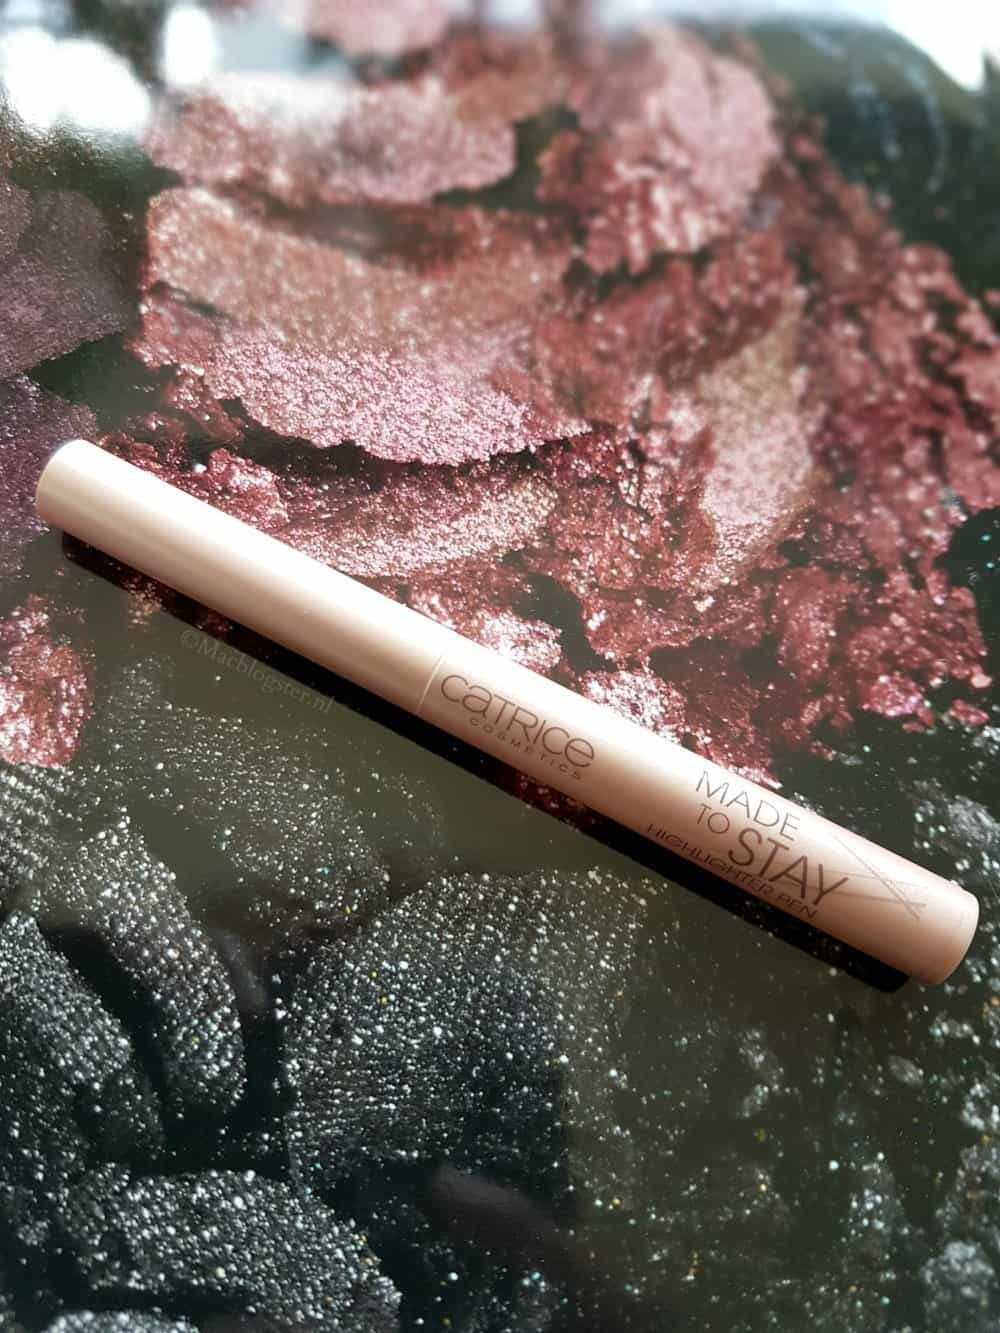 Catrice Highlighter Pen: budget highlighter aanbrengen